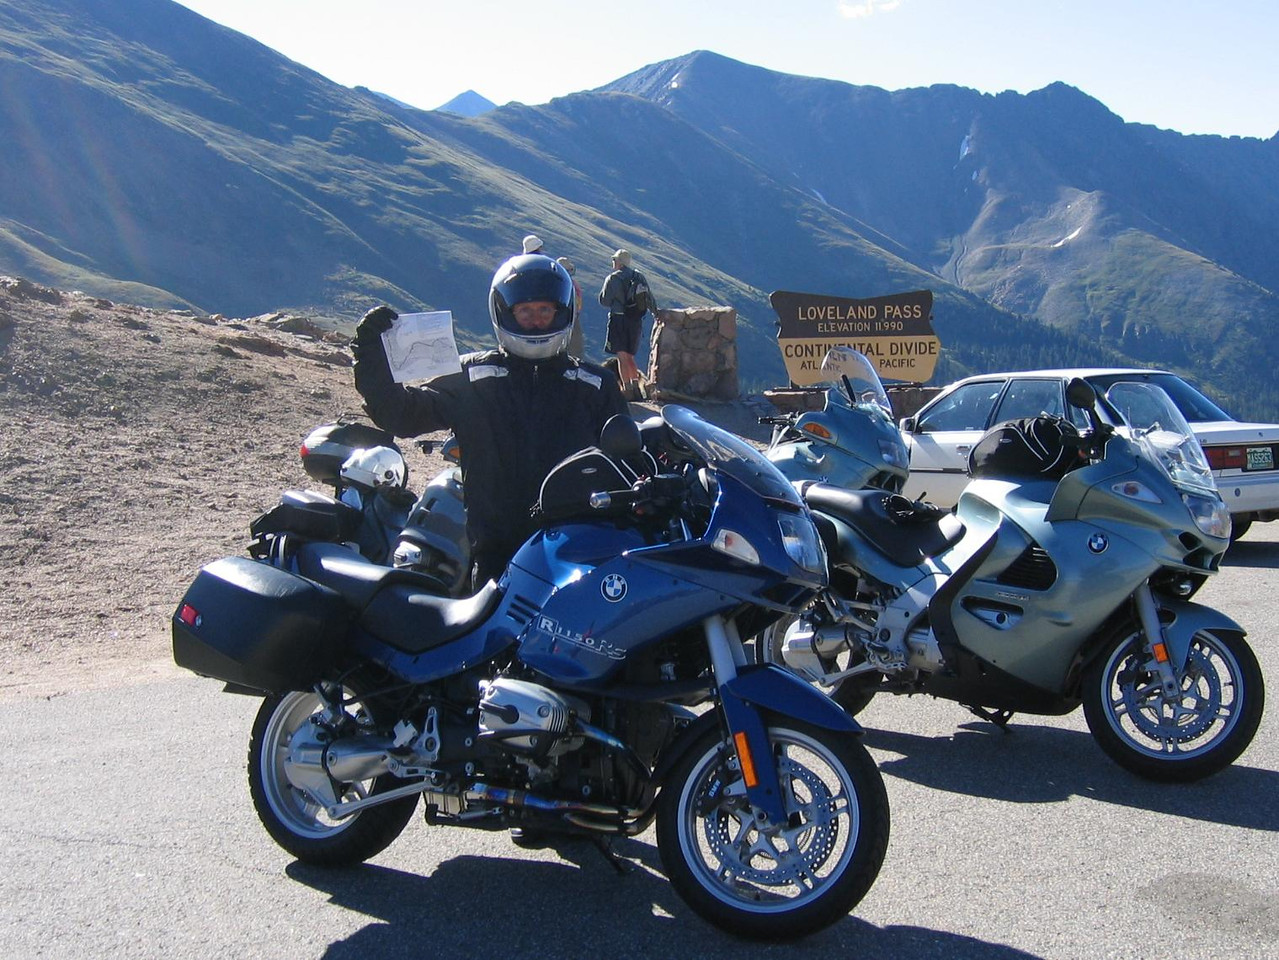 The second pass was Loveland Pass.